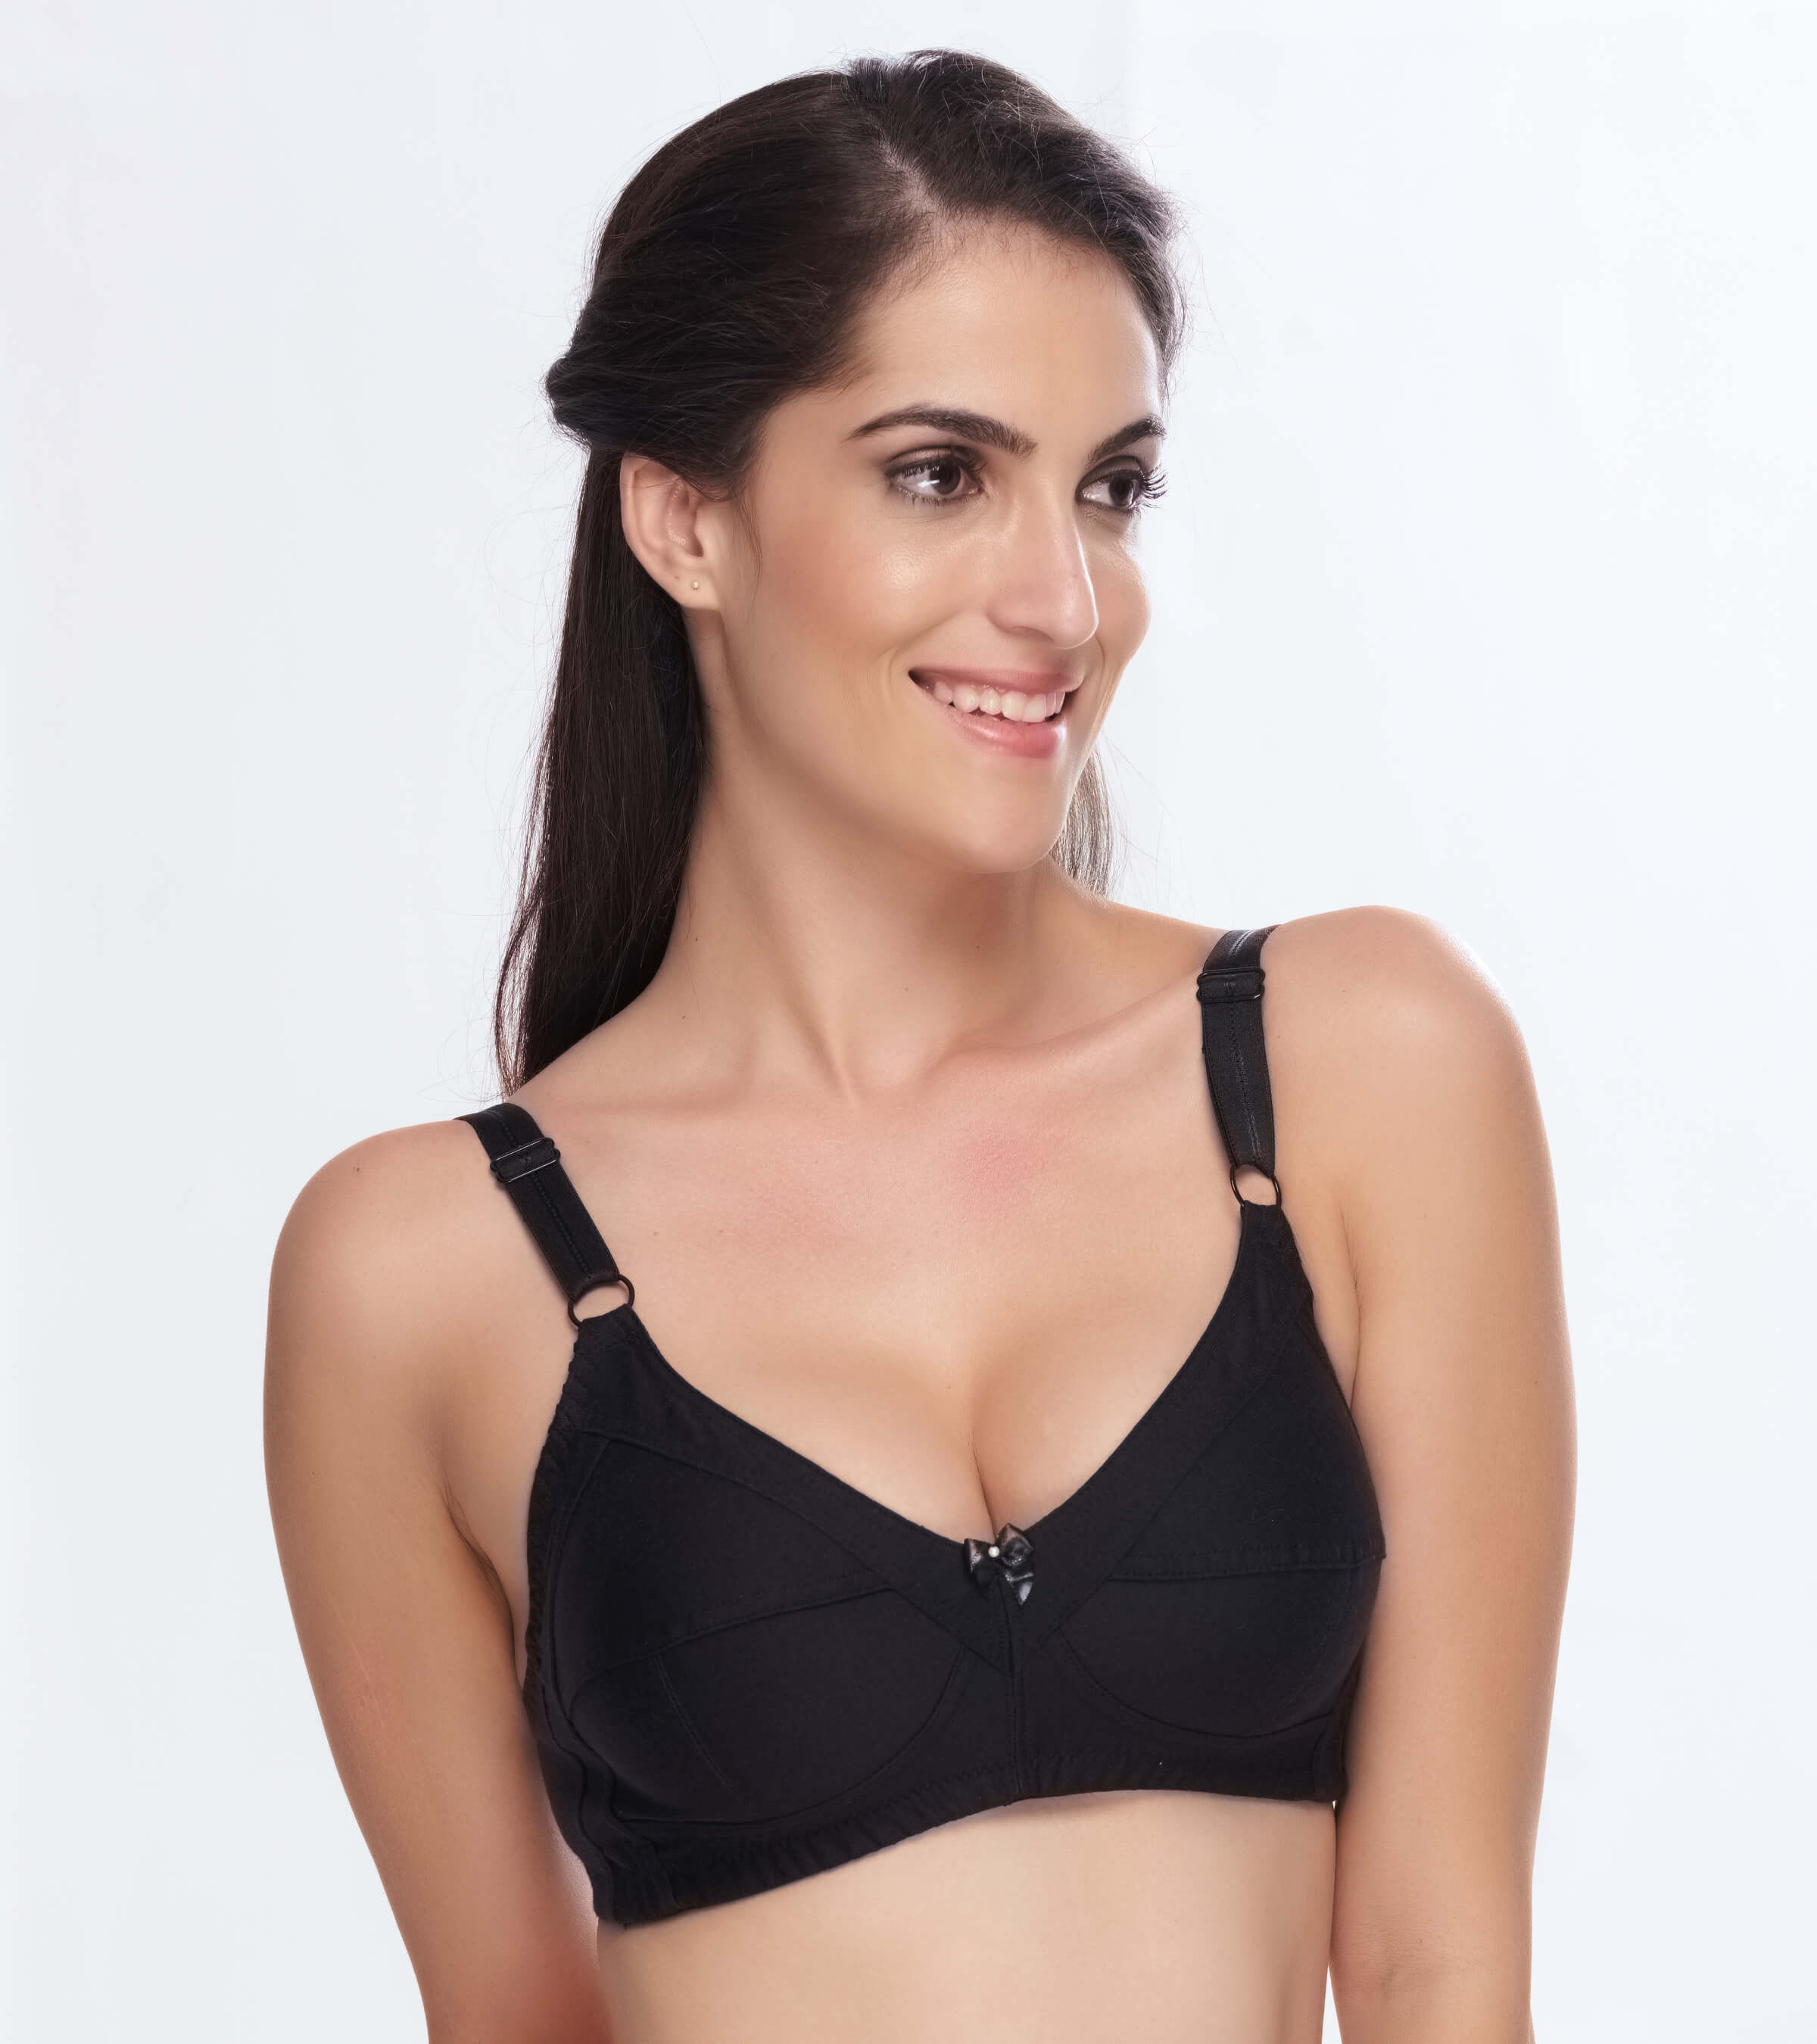 97c252b444260 Daisy Dee Cotton Non Padded Non Wired Full Coverage Black Bra ...